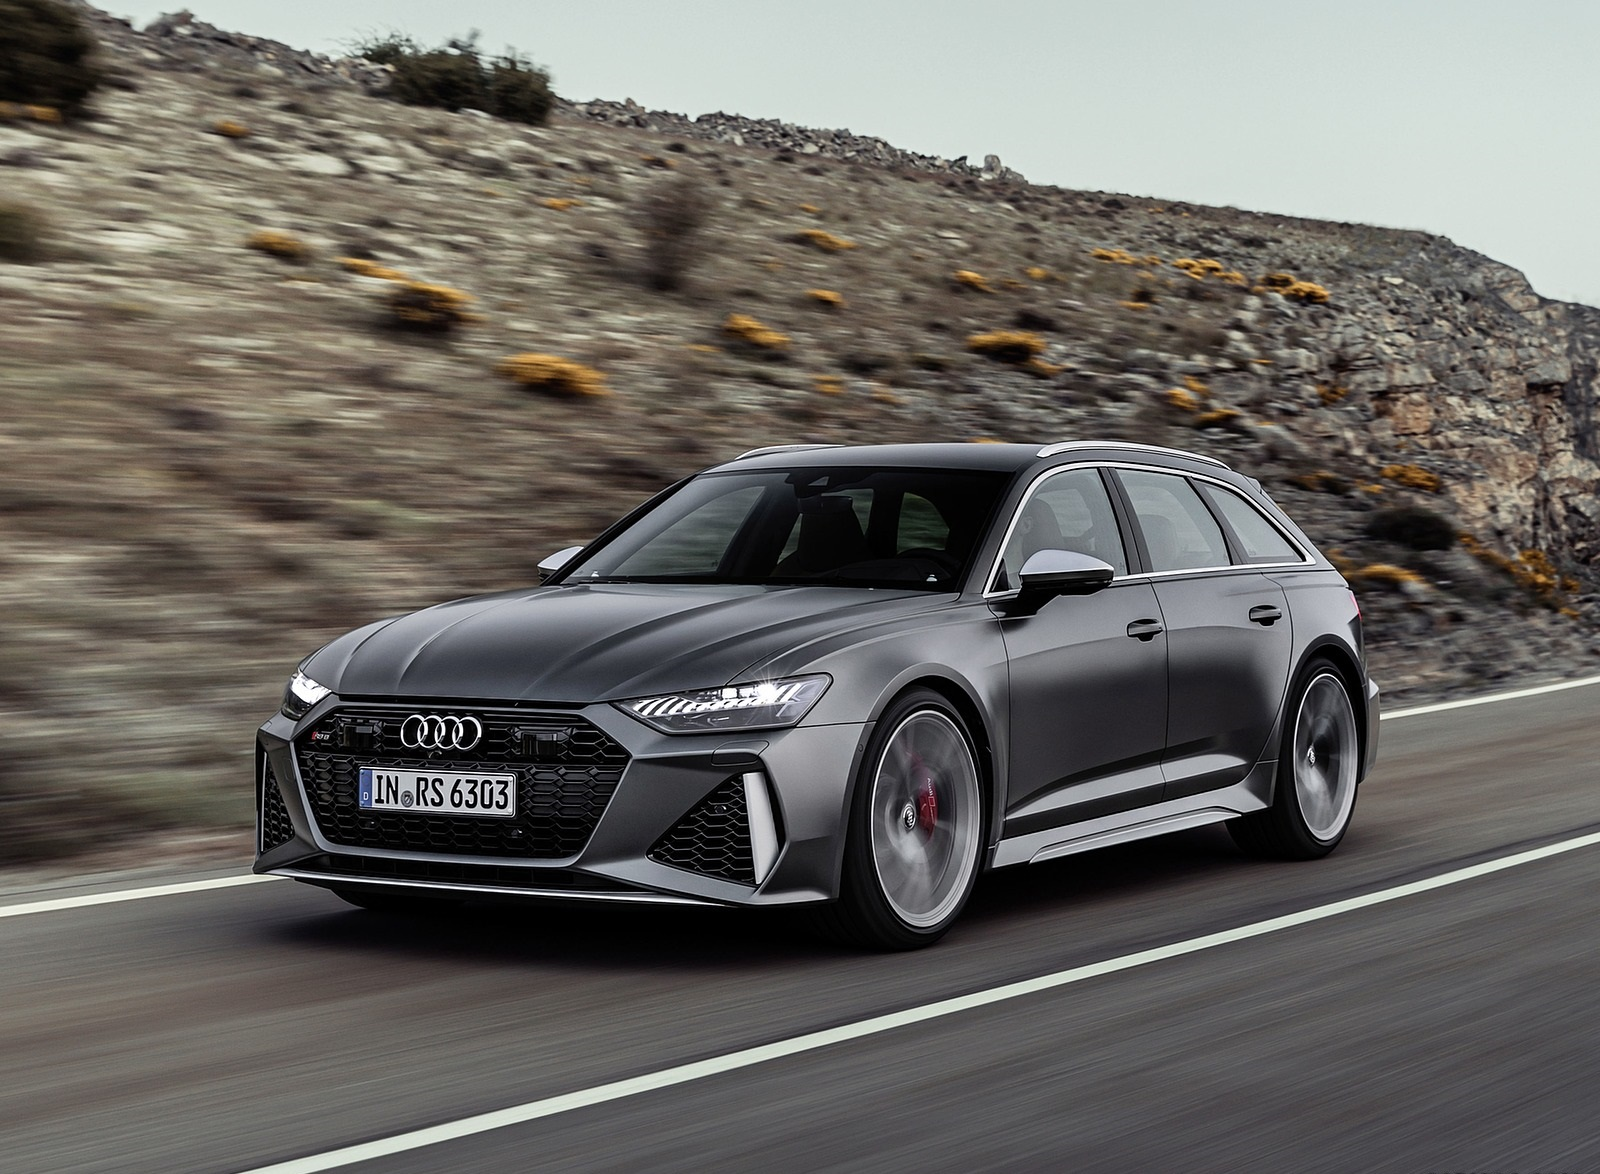 2020 Audi RS 6 Avant Front Three-Quarter Wallpapers (1)